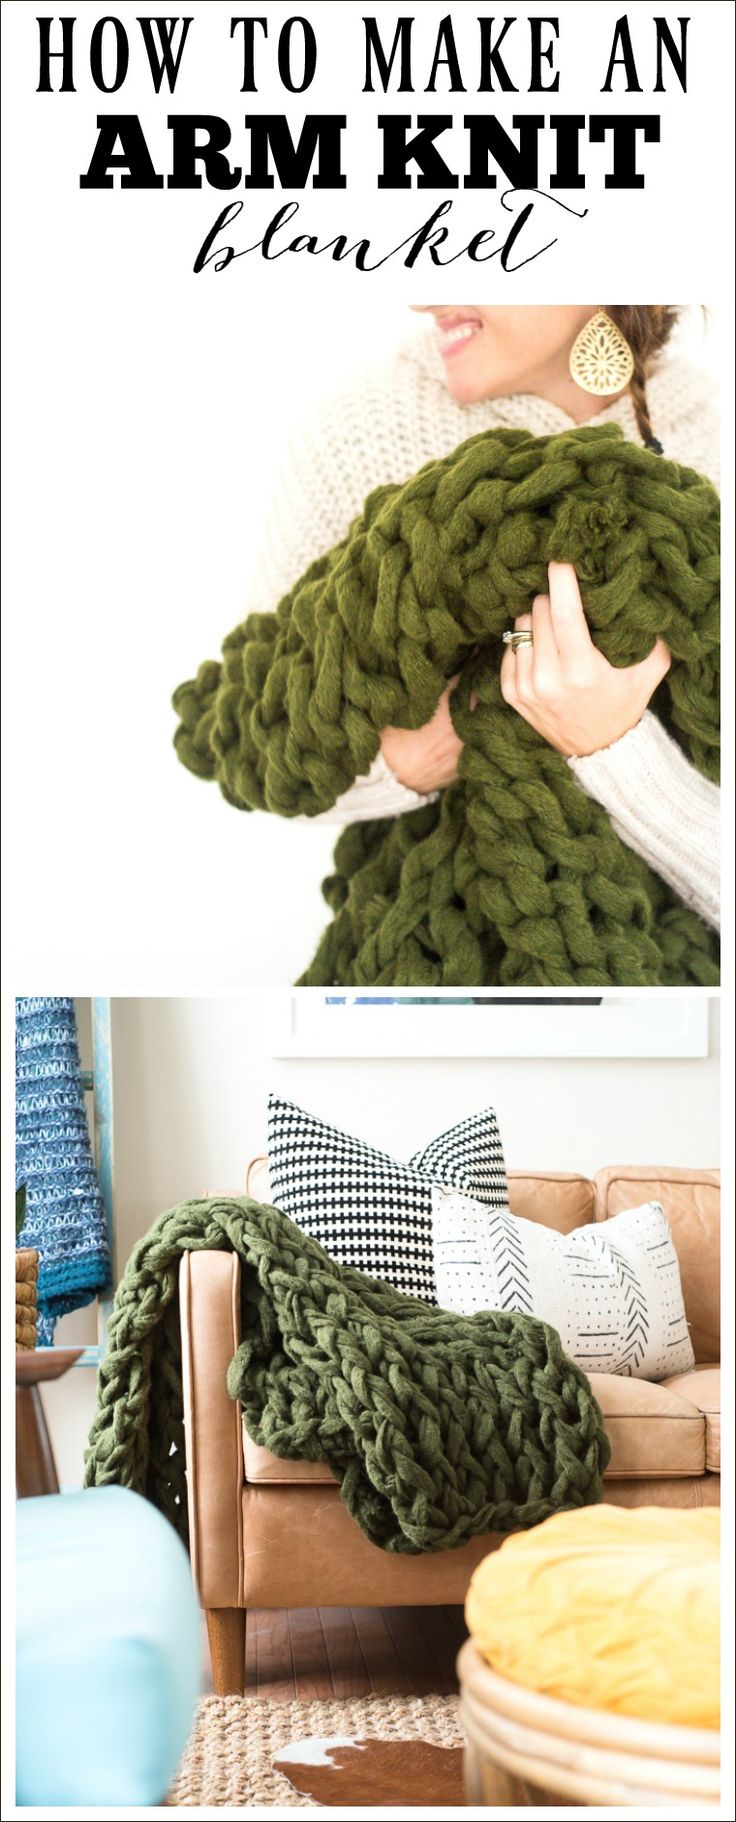 Library of Knitting Stitches - Knitting Stitch Patterns